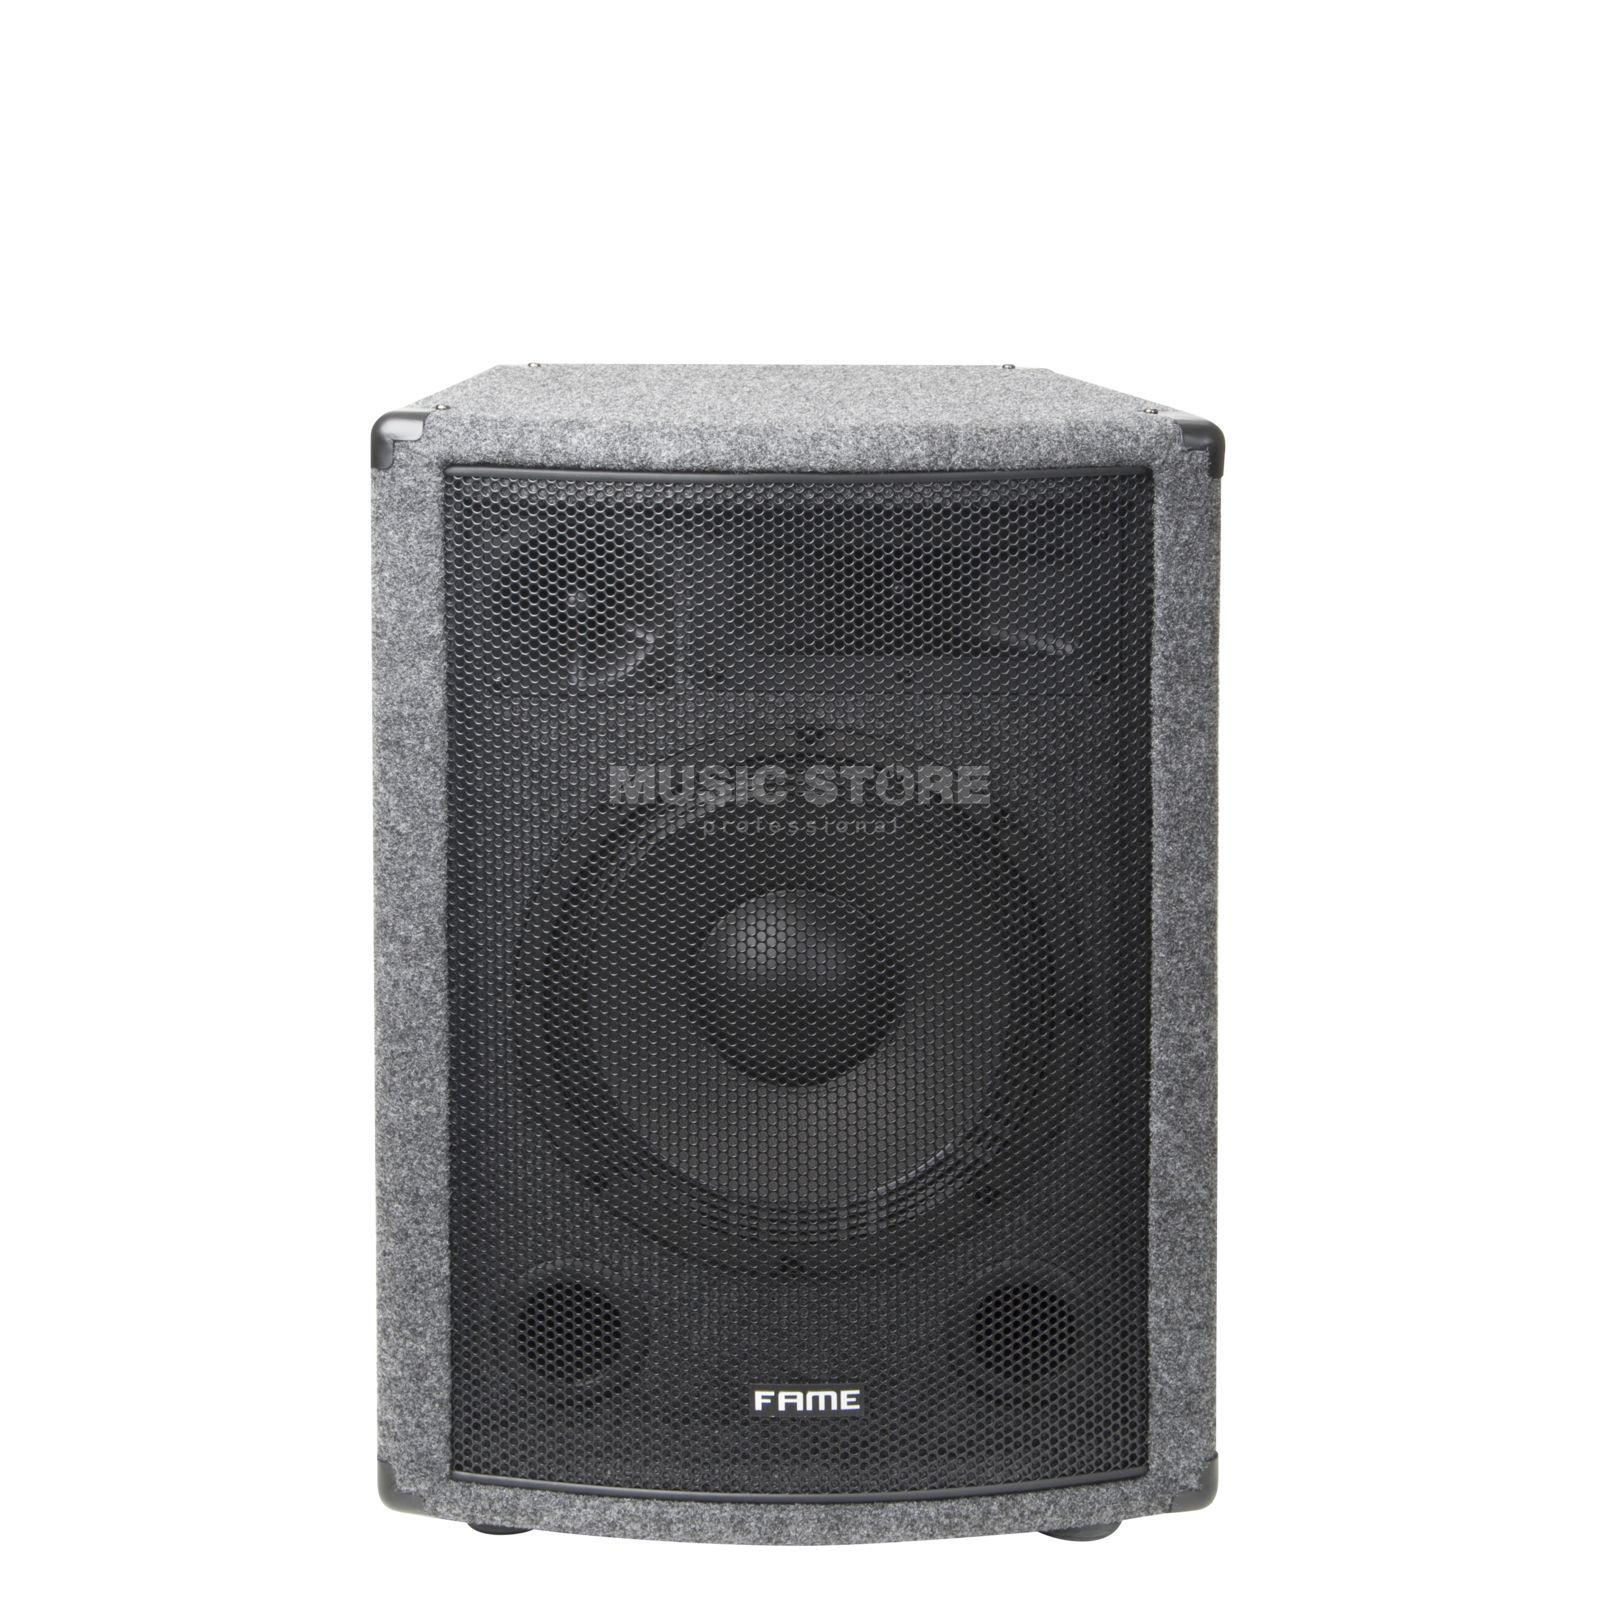 Fame audio MC-10 PLUS 150 Watt / 8 Ohm Produktbild